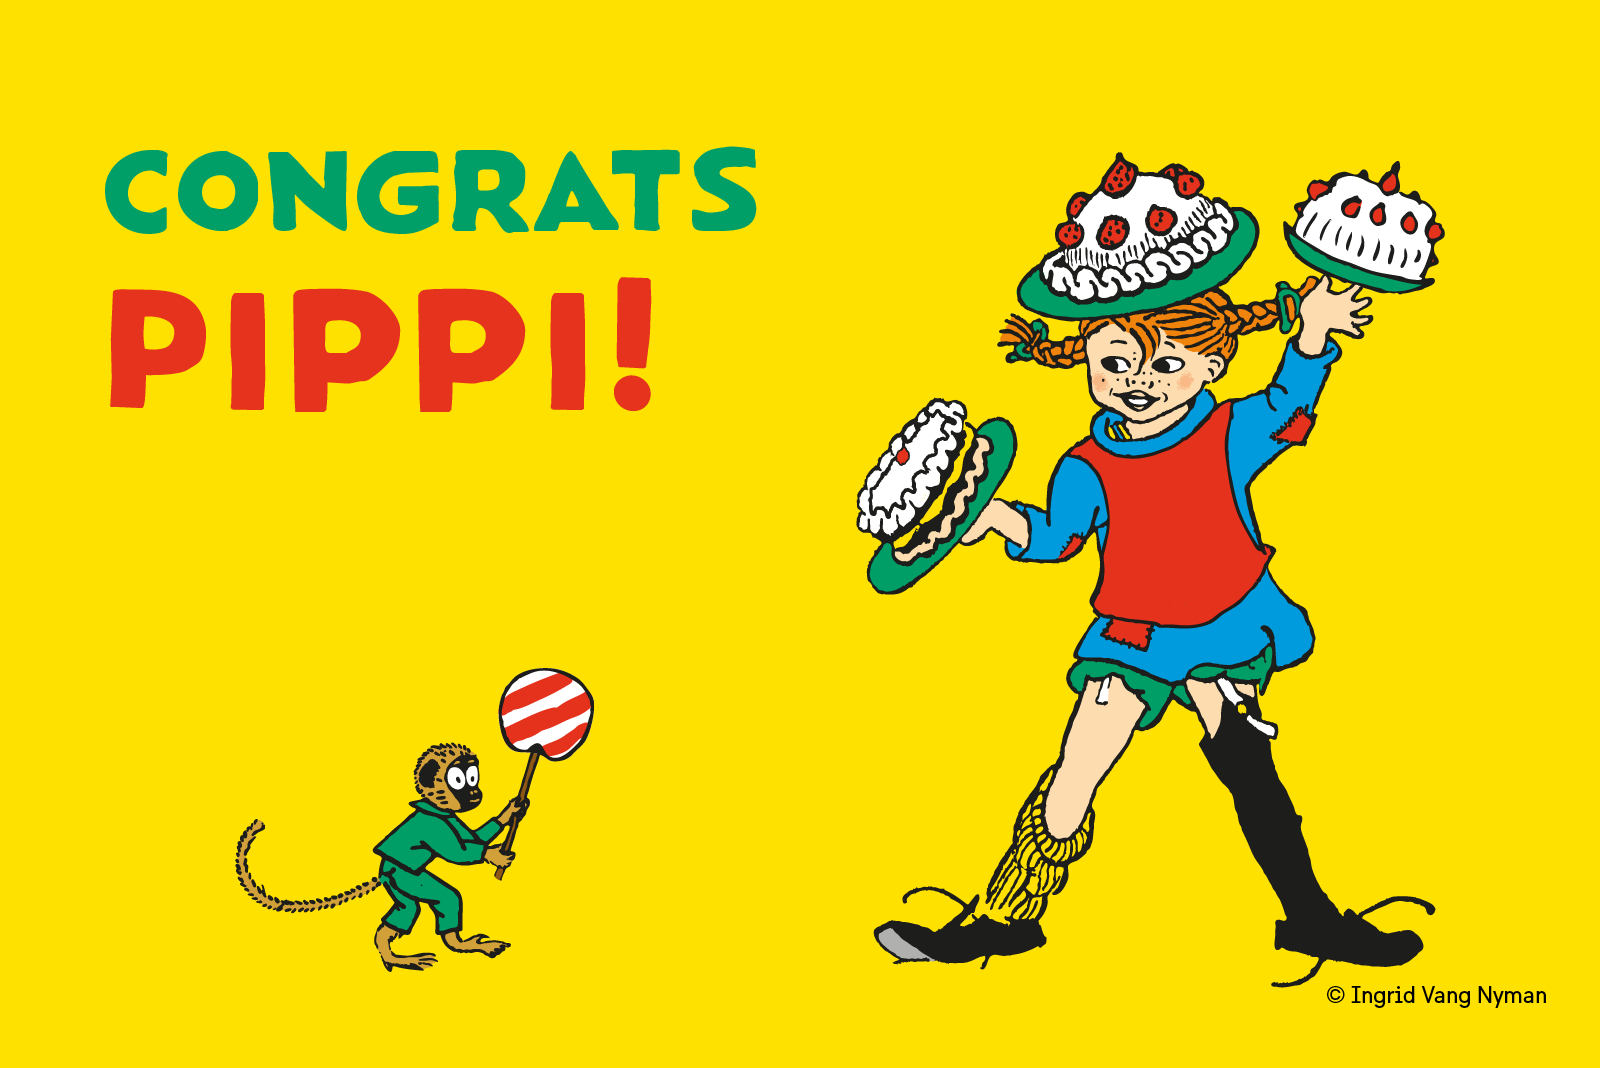 The illustration aims to highlight the 75th anniversarie of Pippi Longstocking. Pippi holds three cakes, one on her head and one in each hand. On the side is Mr Nilsson with a huge lollipop.